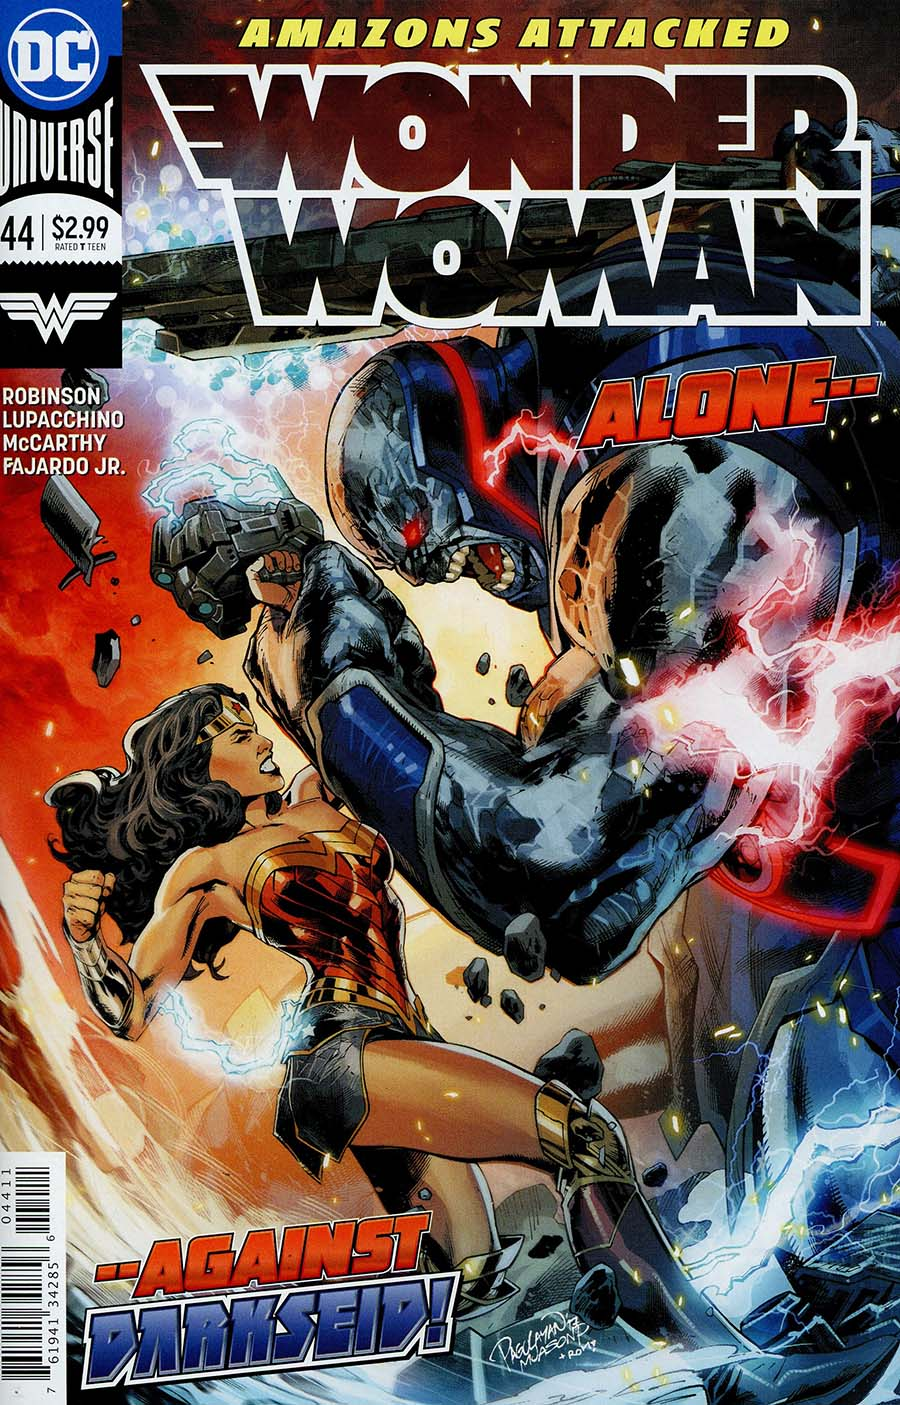 Wonder Woman Vol 5 #44 Cover A Regular Carlo Pagulayan Cover